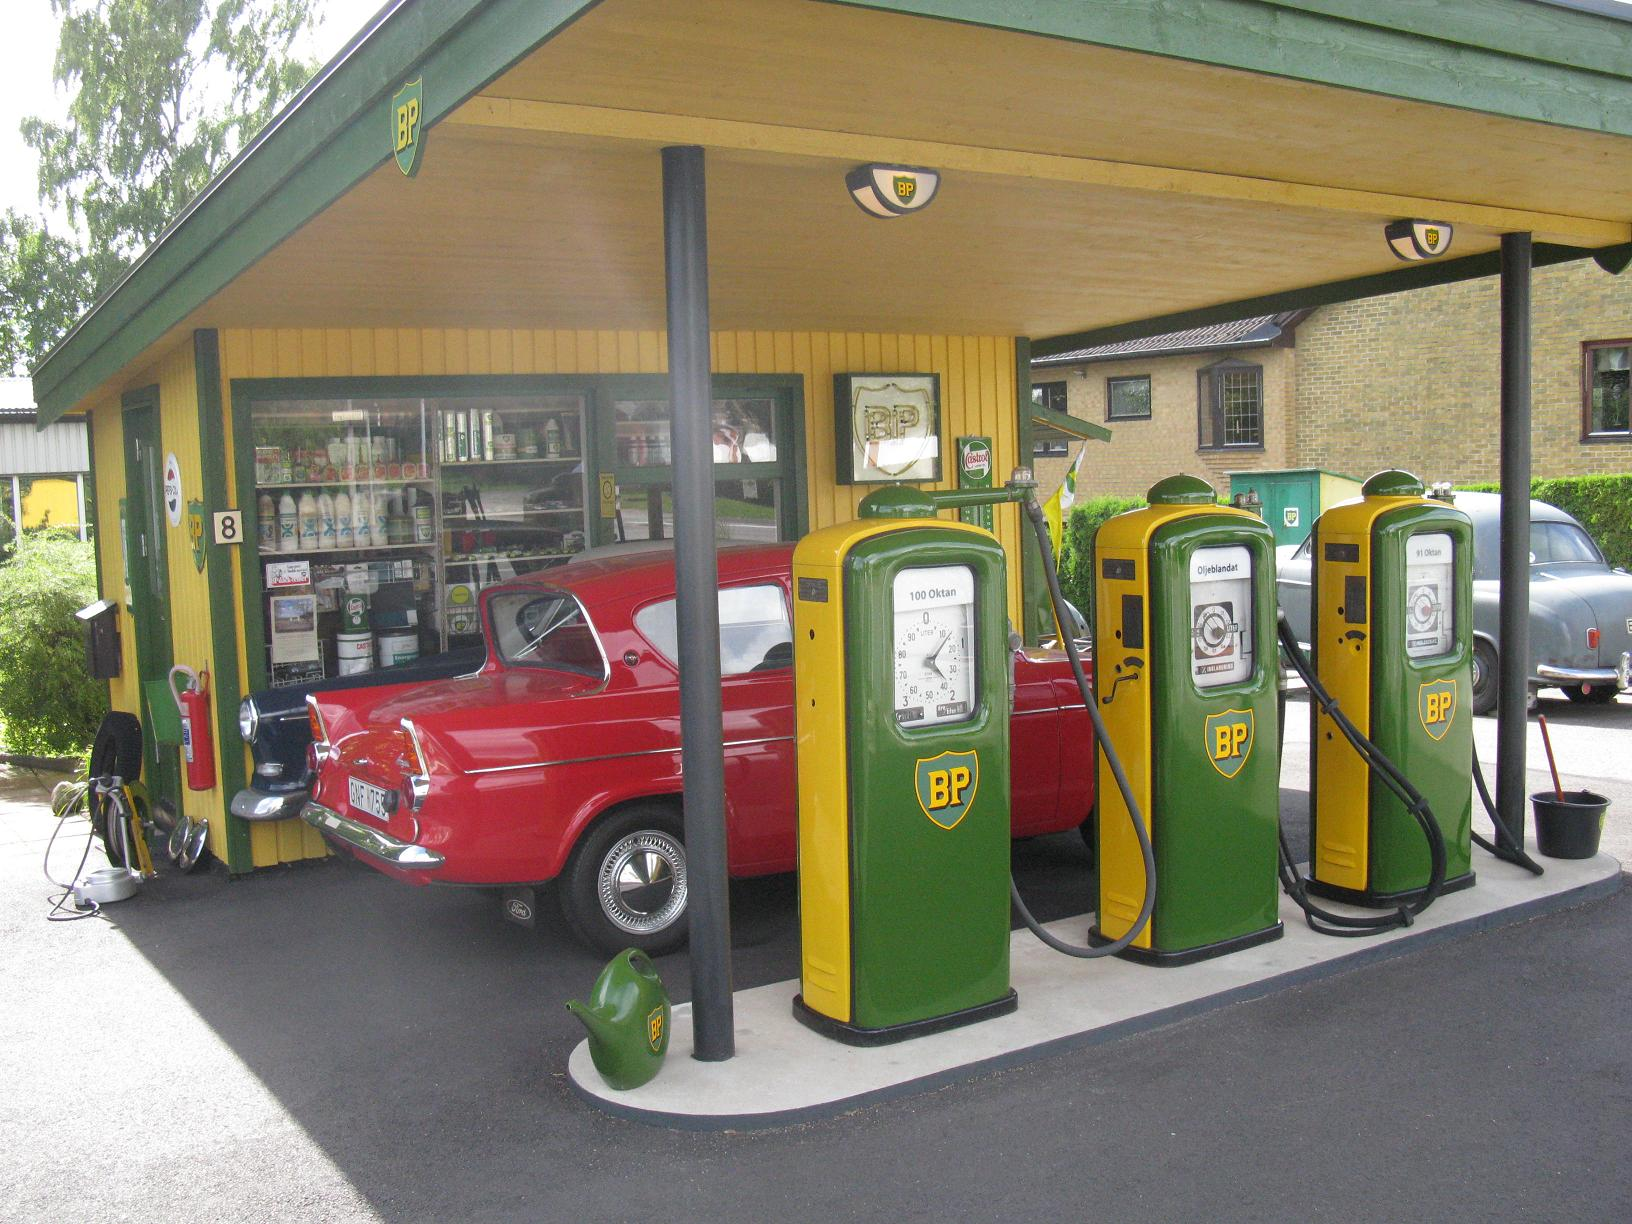 File:Ford Anglia & BP Gas Station (5012581269).jpg - Wikimedia Commons